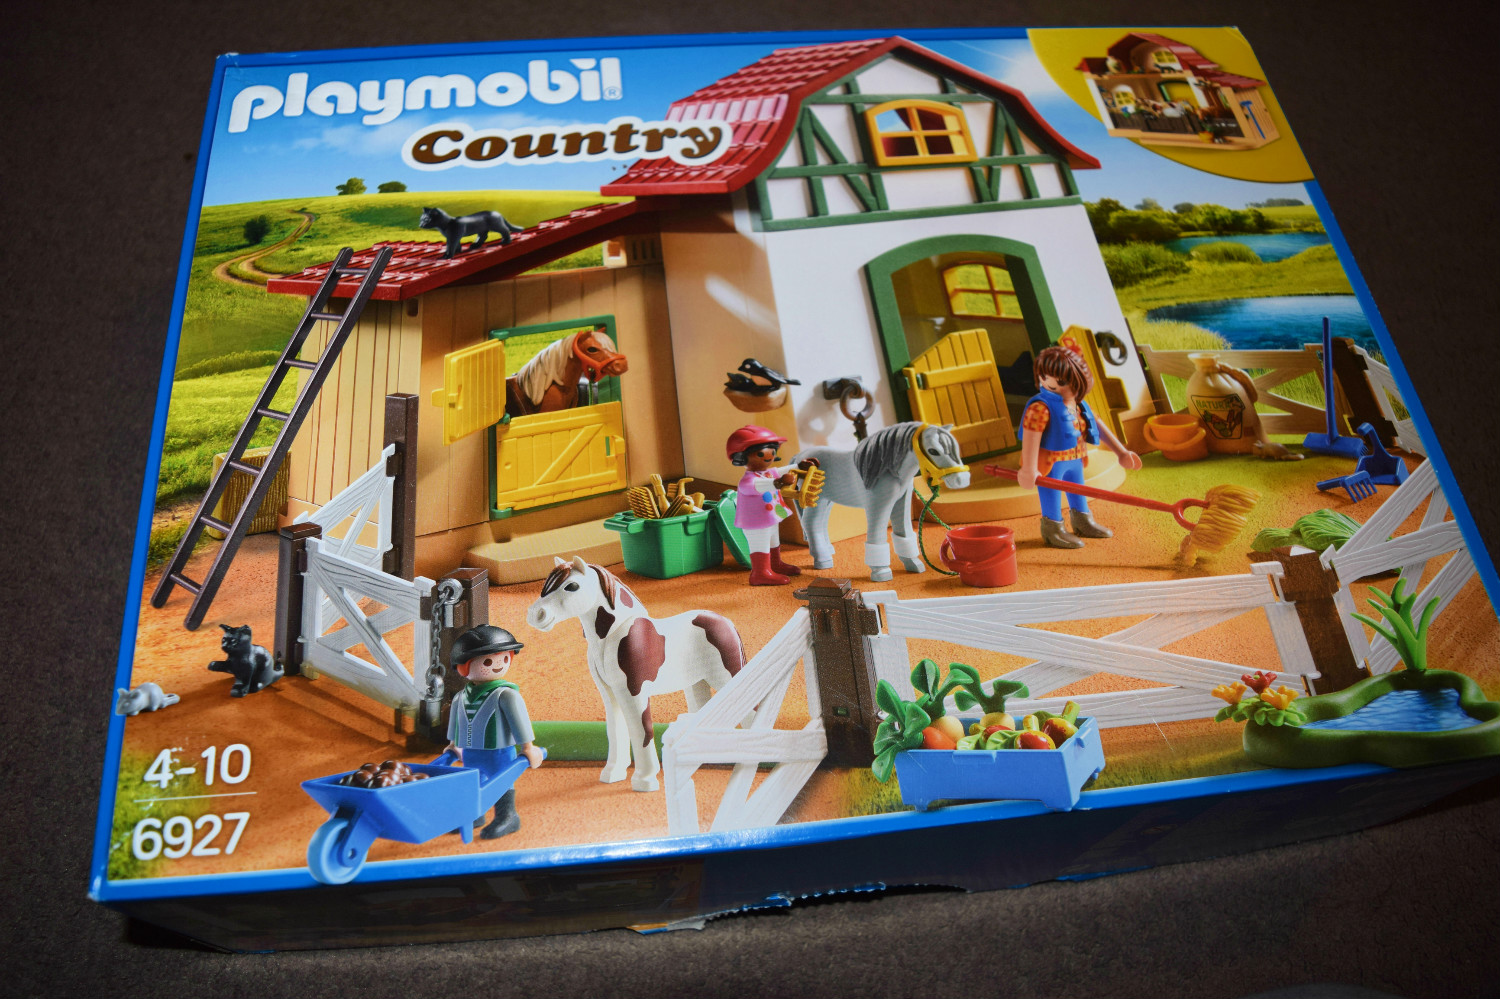 Playmobil Country Pony Farm Set review